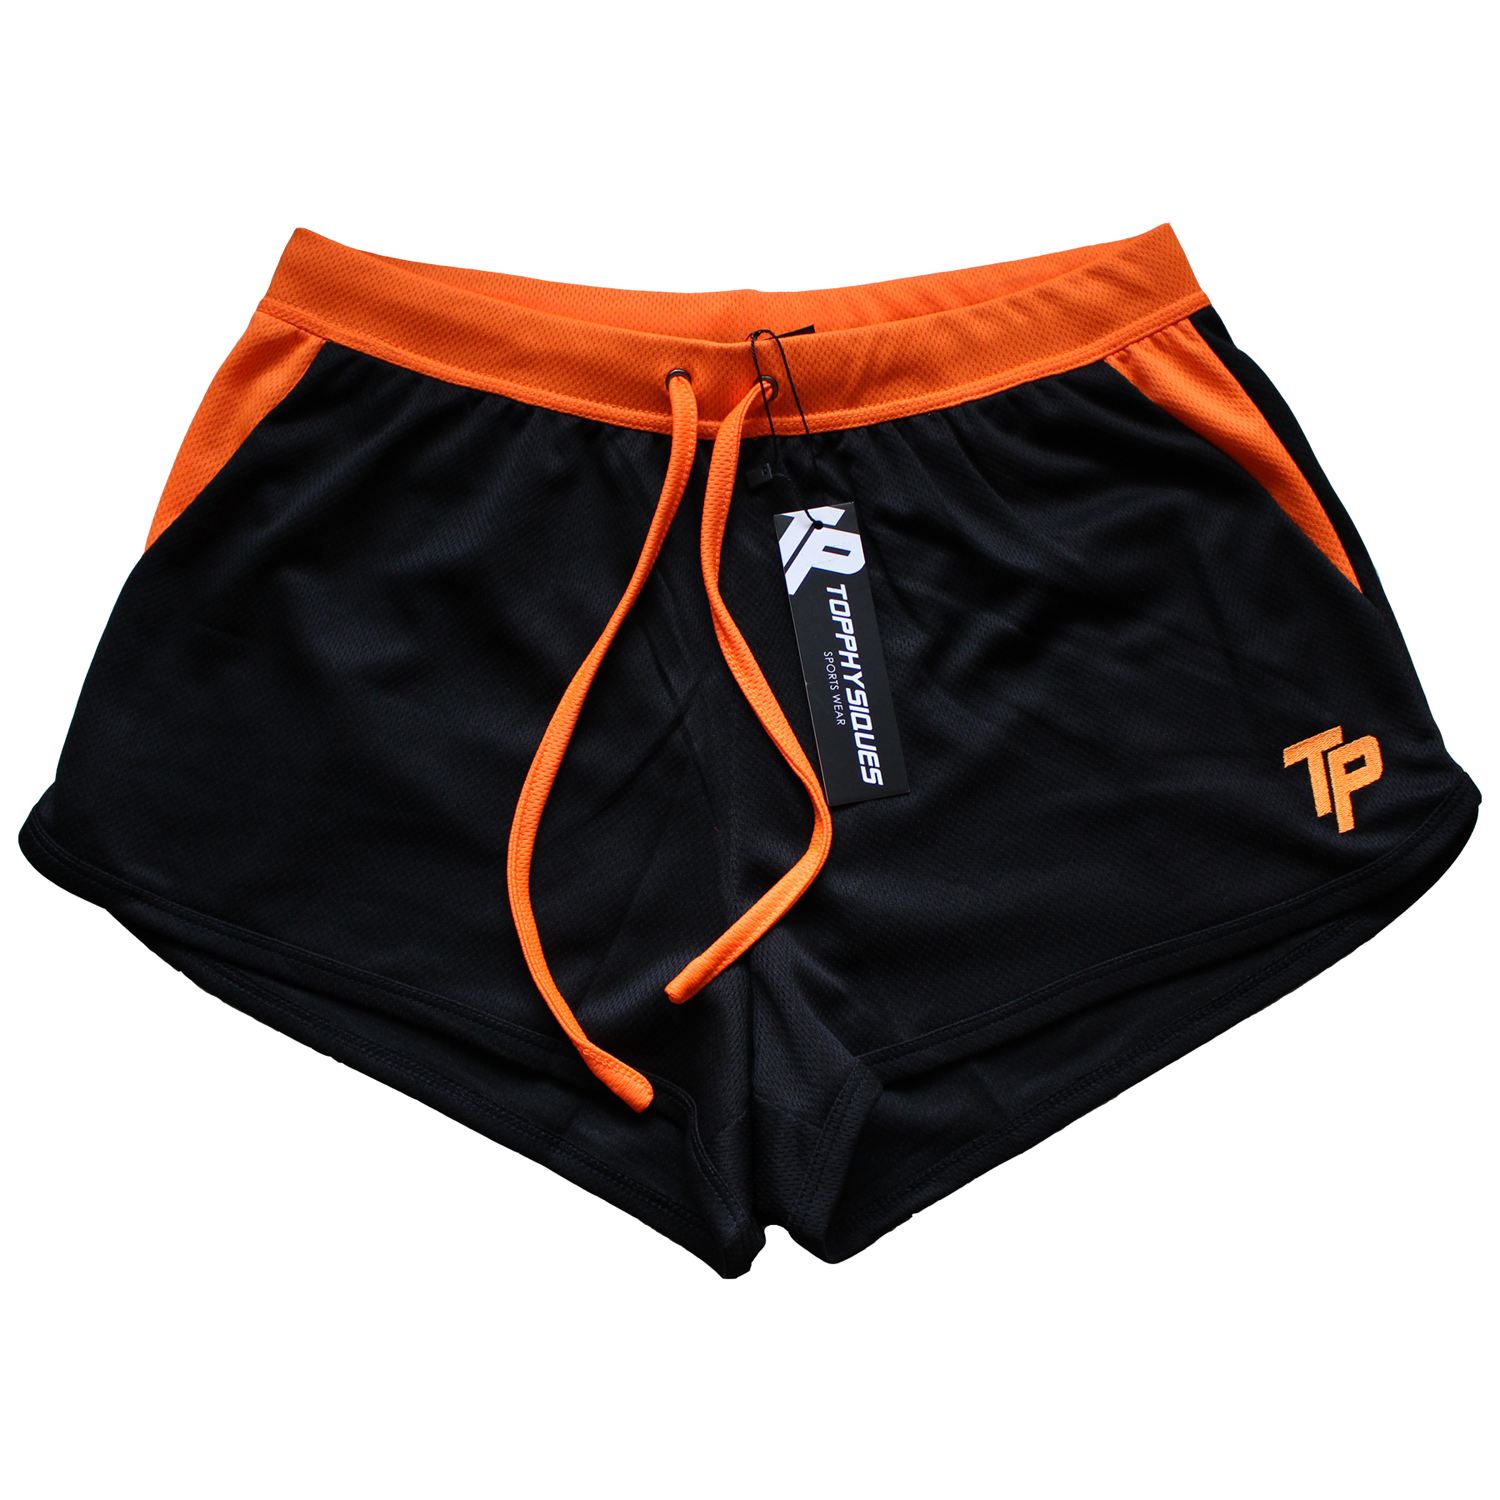 TP BodyBuilding Shorts - Black & Fluor Orange